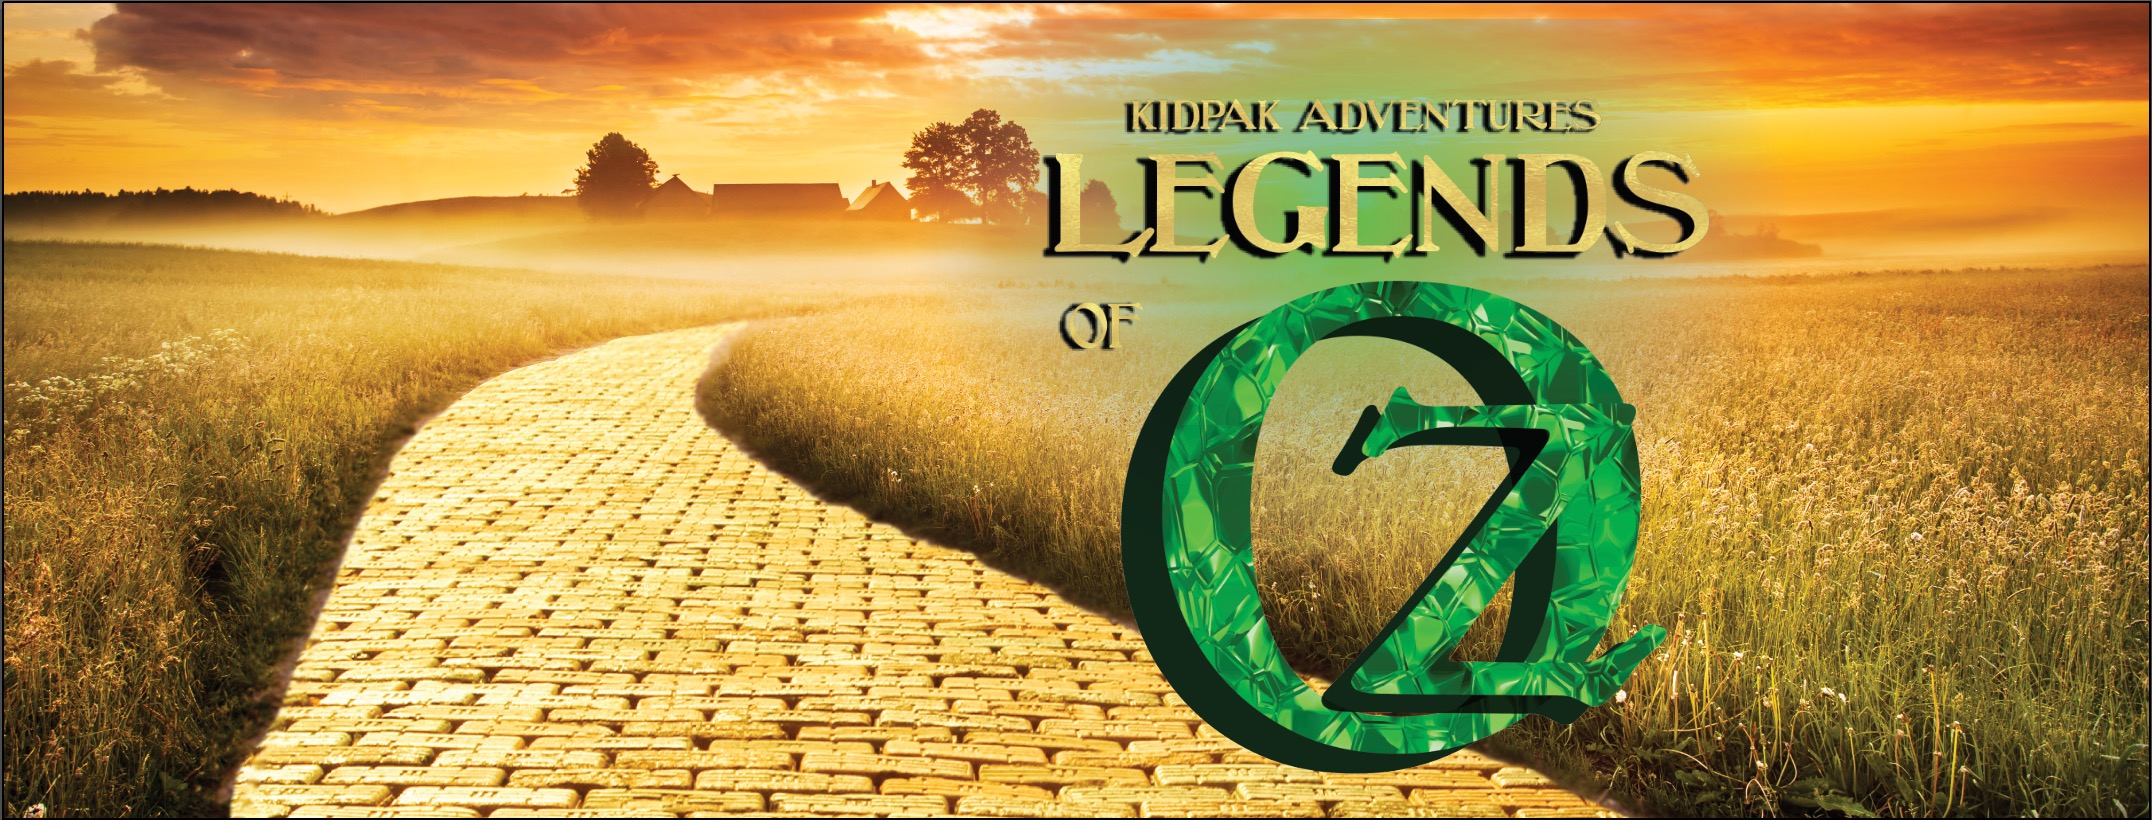 You're not in Kansas anymore!Get ready to follow a path of adventure unlike anything you've ever seen!Along the Yellow Brick Road, we'll be learning from the Bible and some classic characters from Oz about wisdom, love, courage, and being thankful for the many blessings we have.There's no place like KidPak, so join us for a series that's somewhere over the rainbow!It's KidPak Adventures:Legends of Oz!